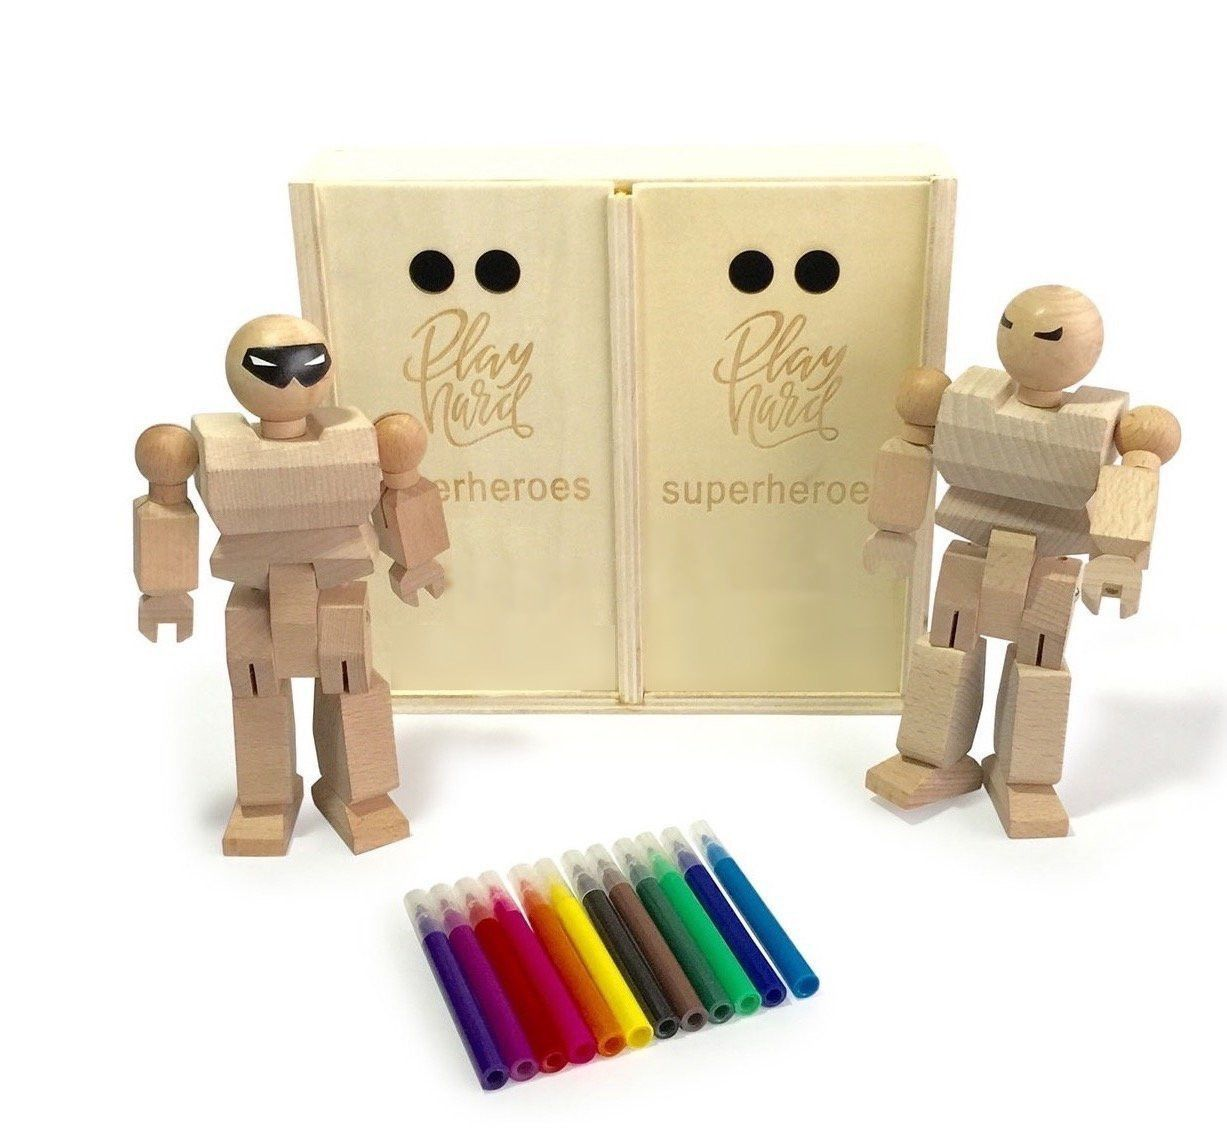 Wooden Action Heroes Kit